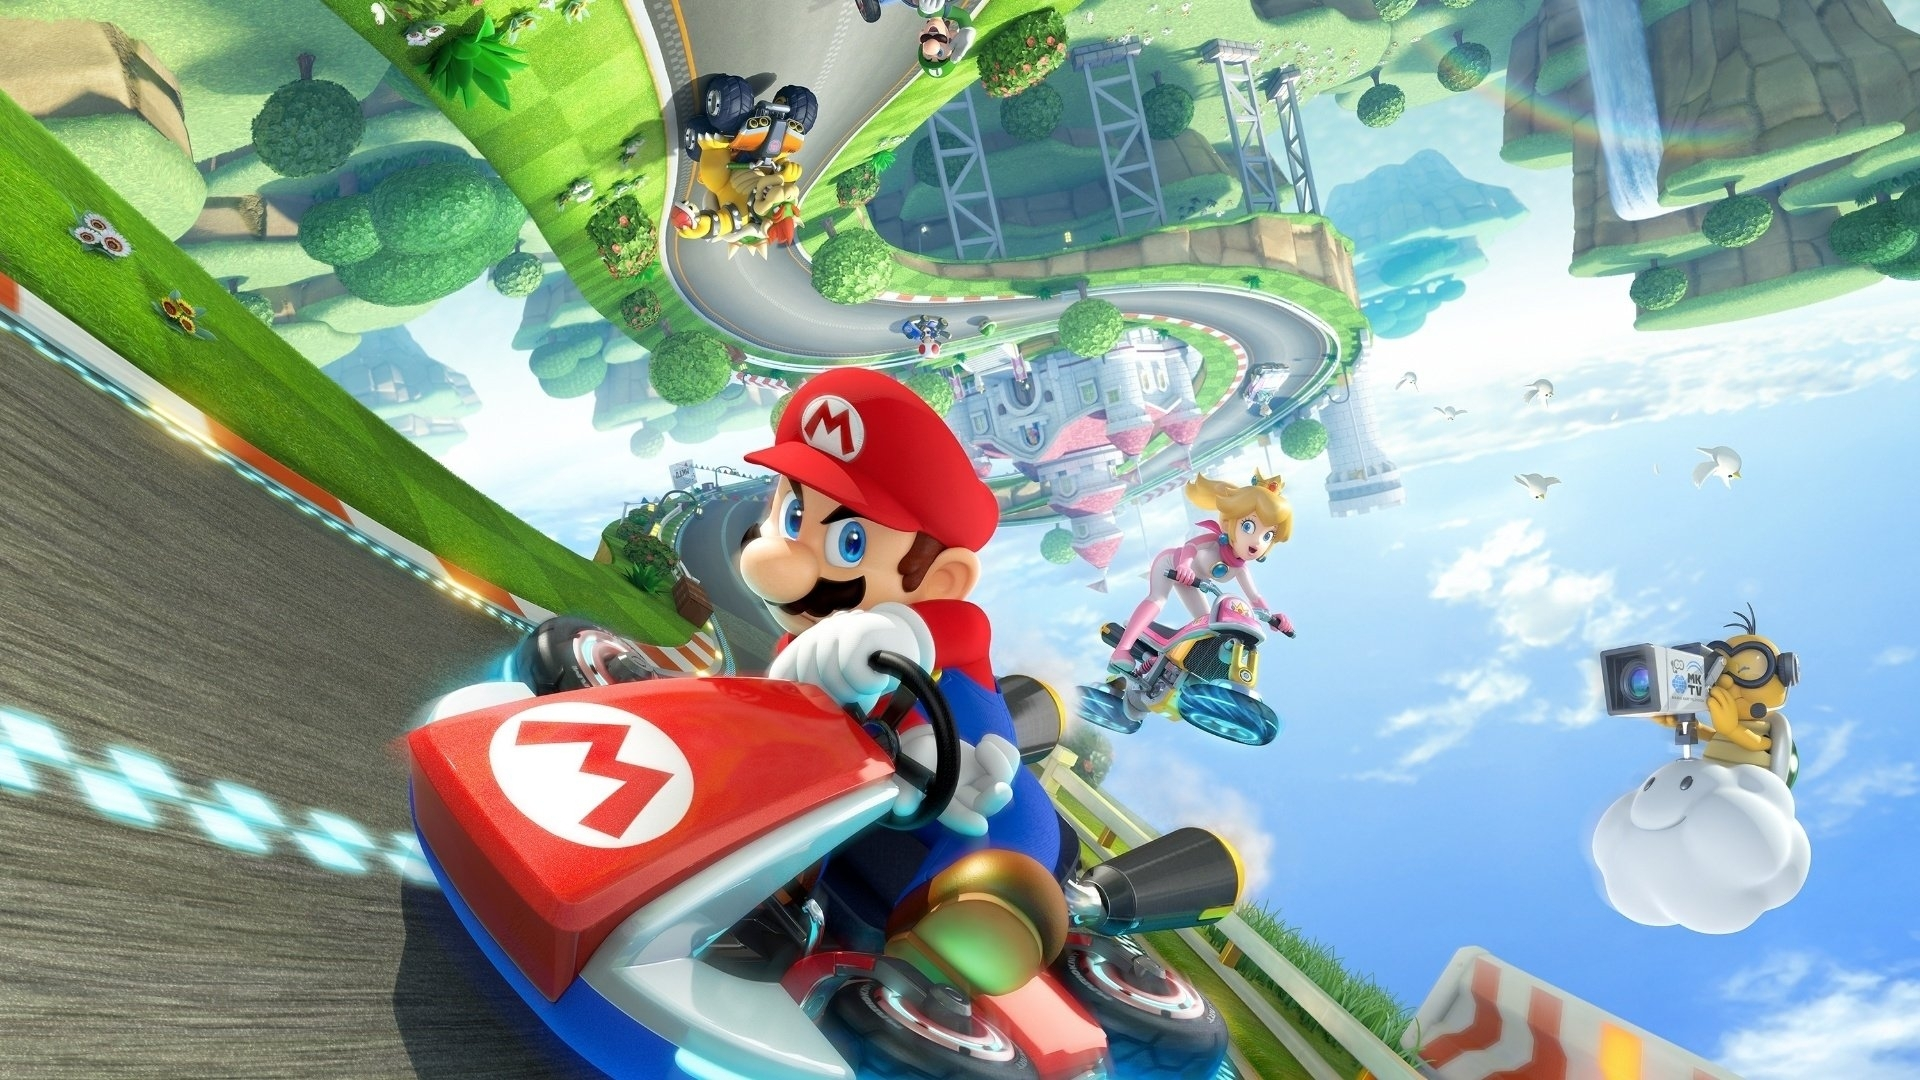 12 mario kart 8 hd wallpapers | background images - wallpaper abyss